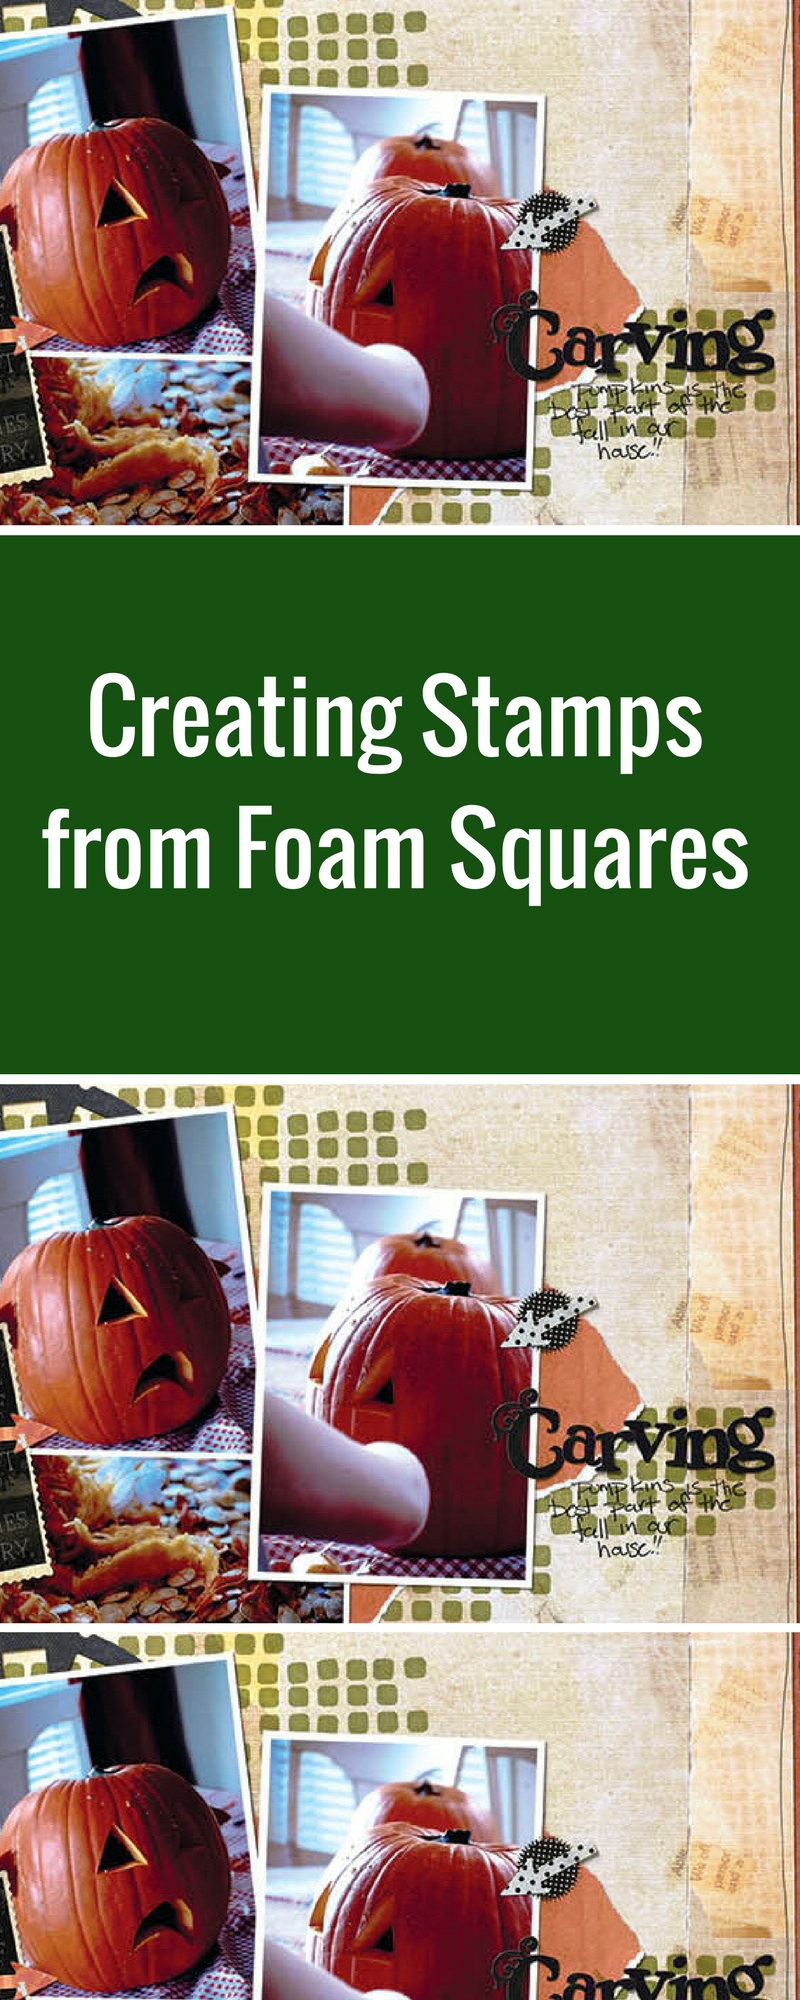 Creating Stamps with Foam Squares | Featuring Scrapbook Adhesives by 3L | Designed by Christy Riopel | Creative Scrapbooker Magazine